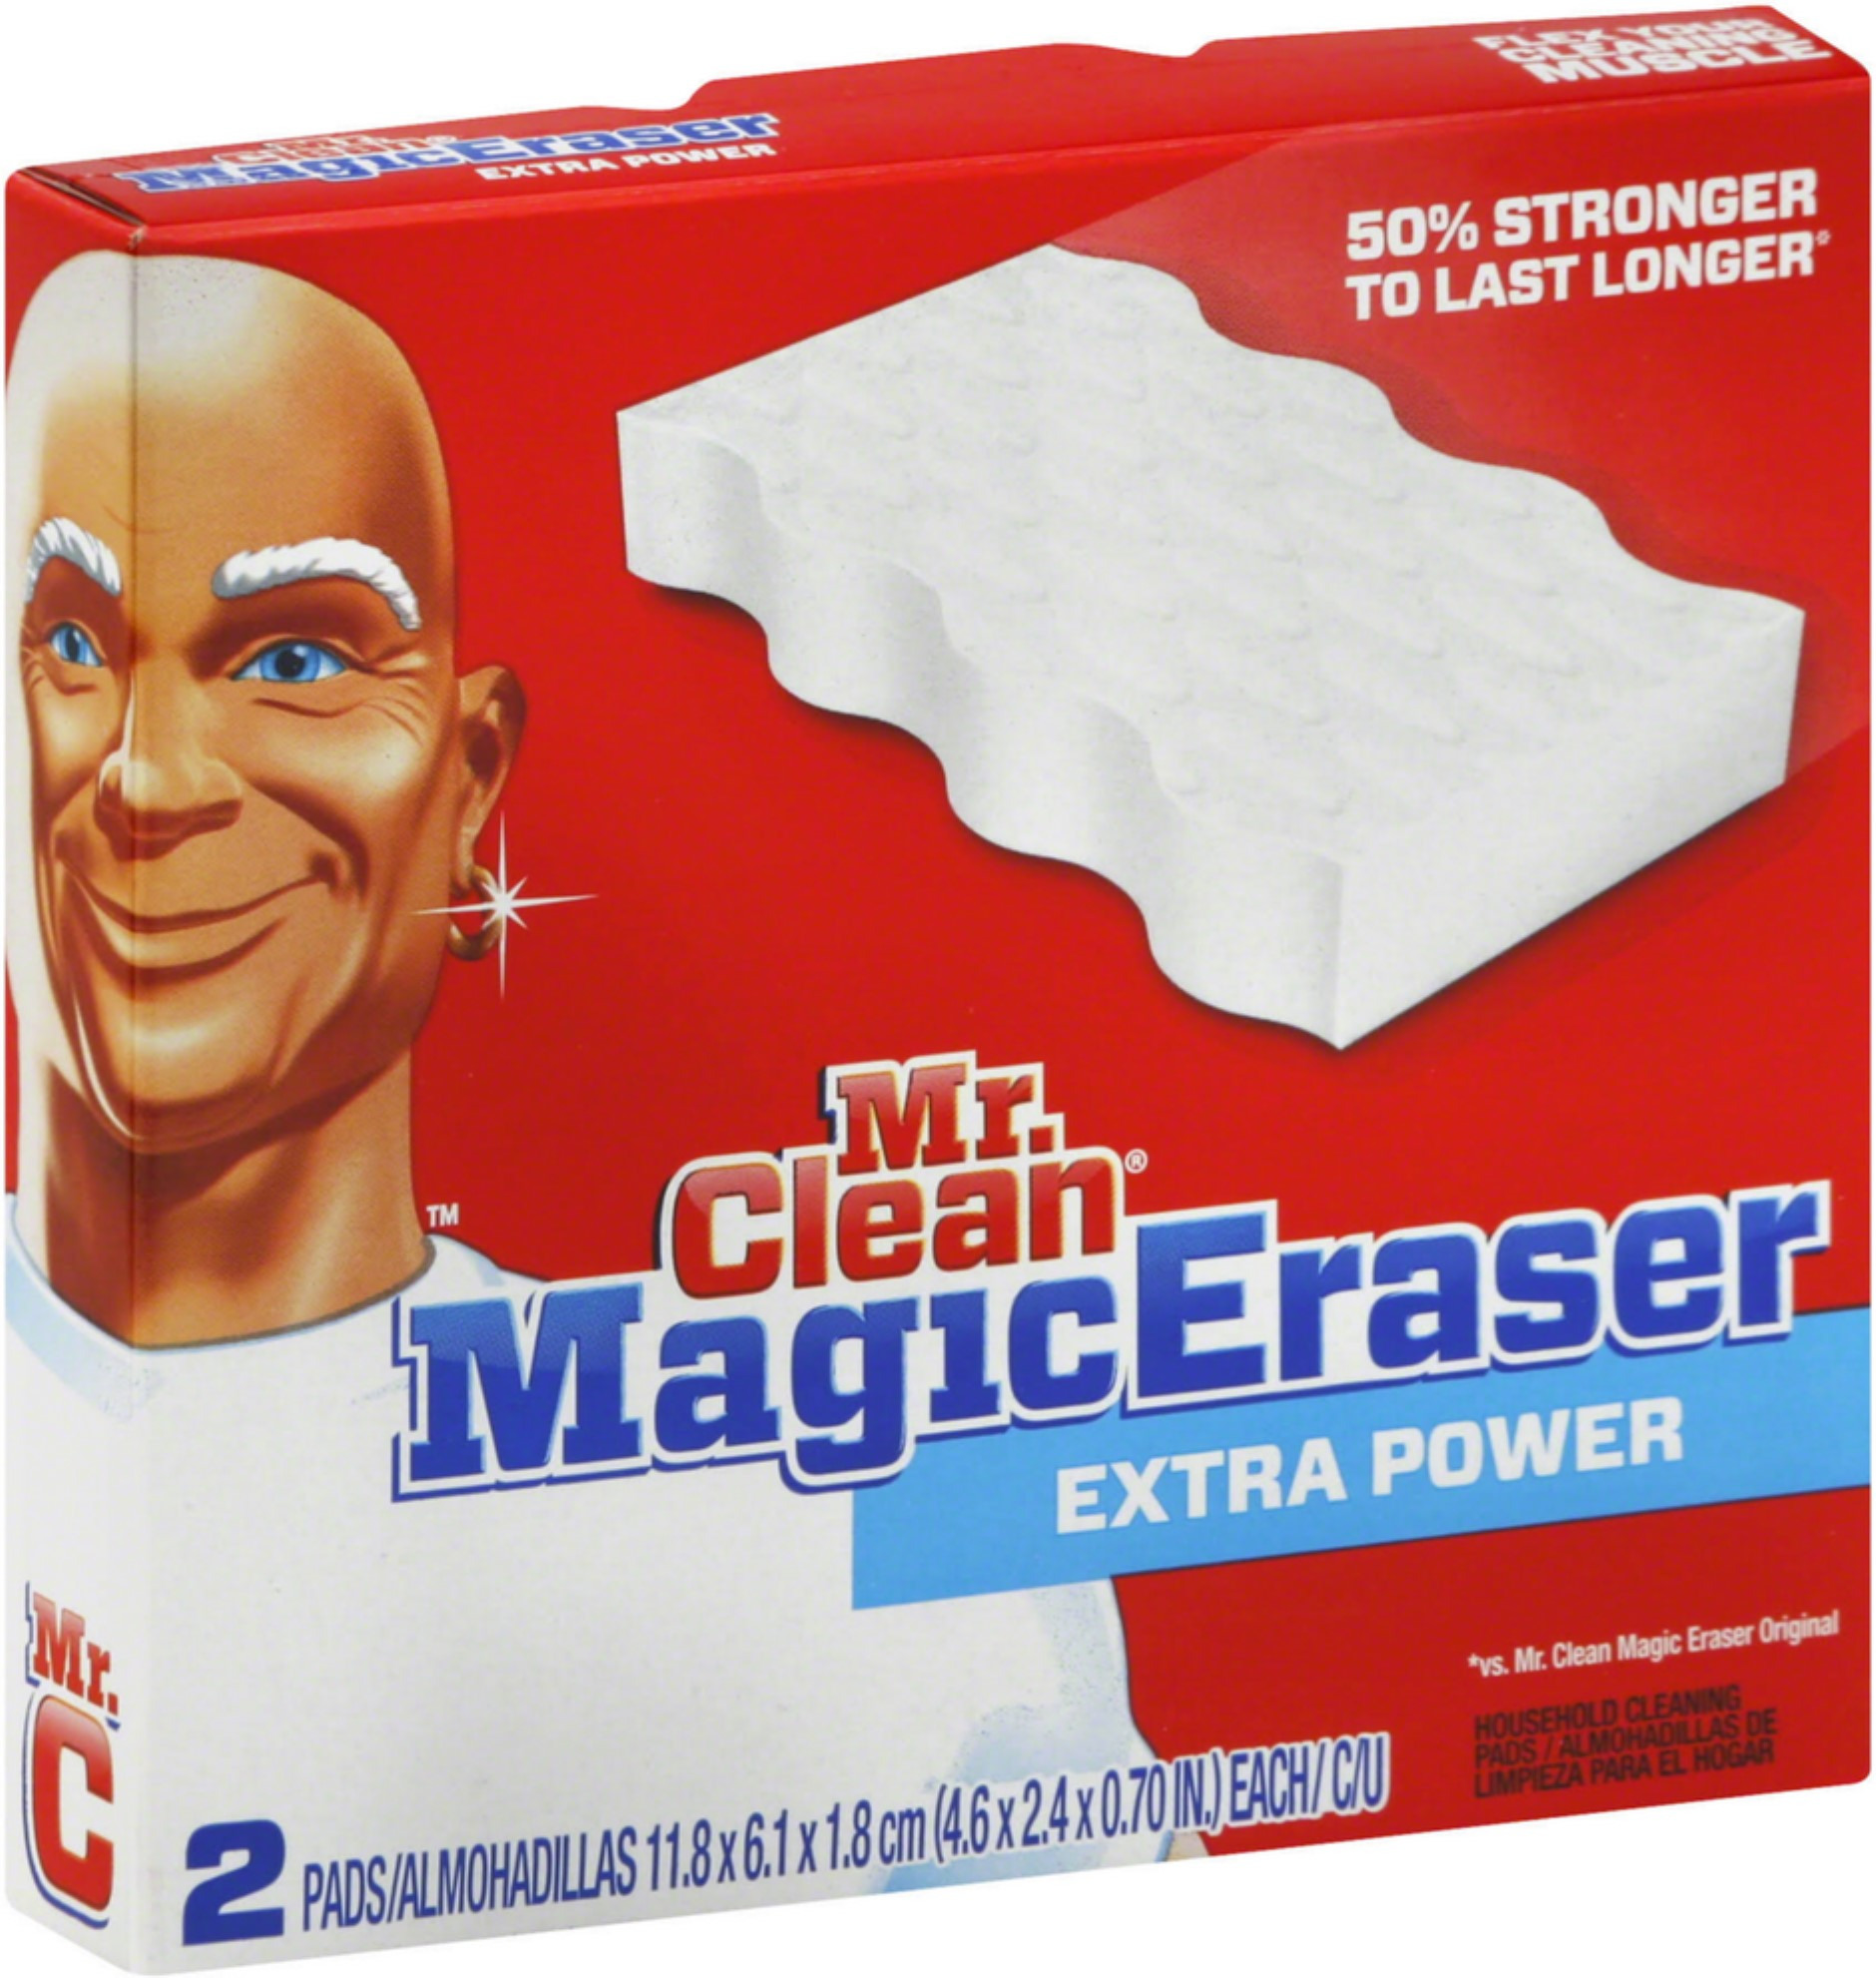 6 Pack - Mr. Clean Magic Eraser, Extra Power 2 ea